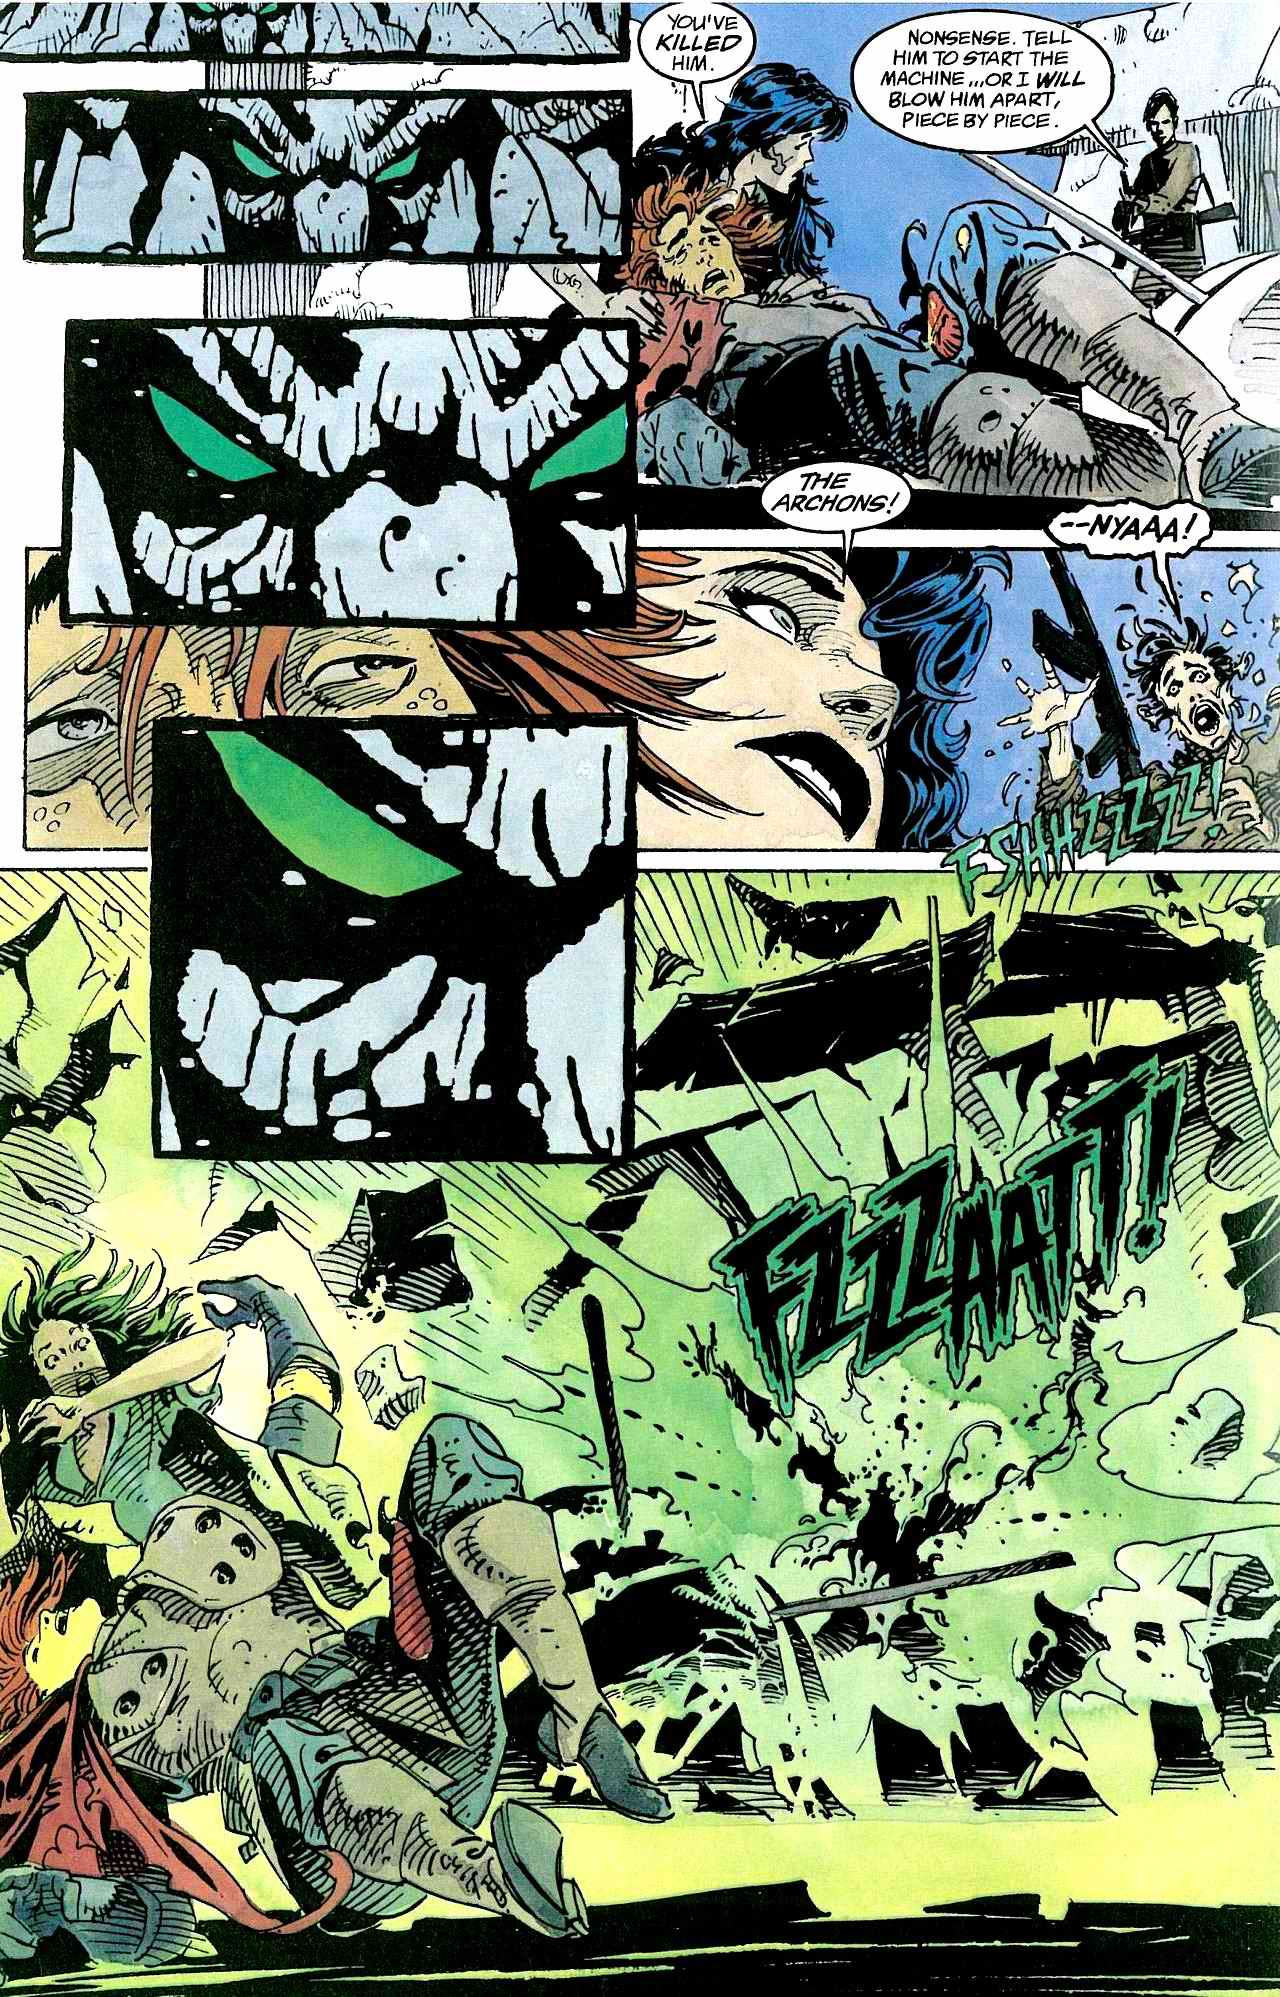 Read online Clash comic -  Issue #3 - 26